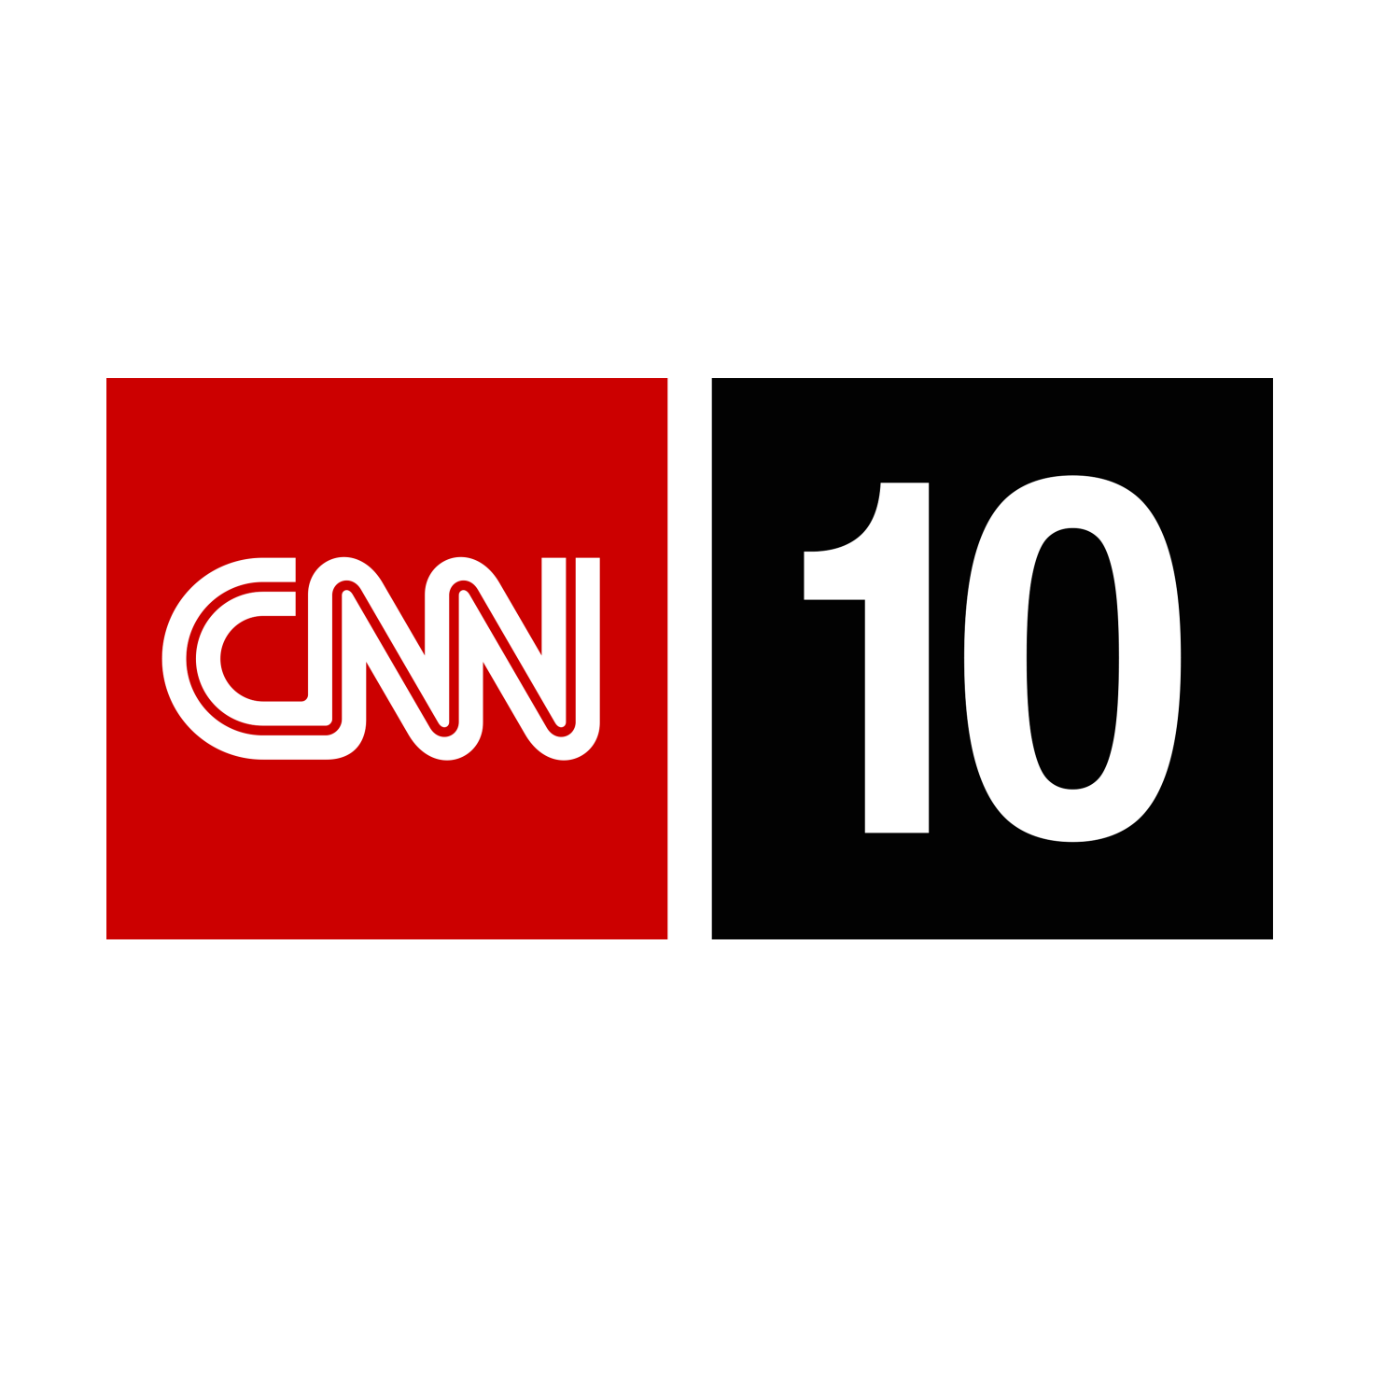 CNN Student News - September 28, 2012